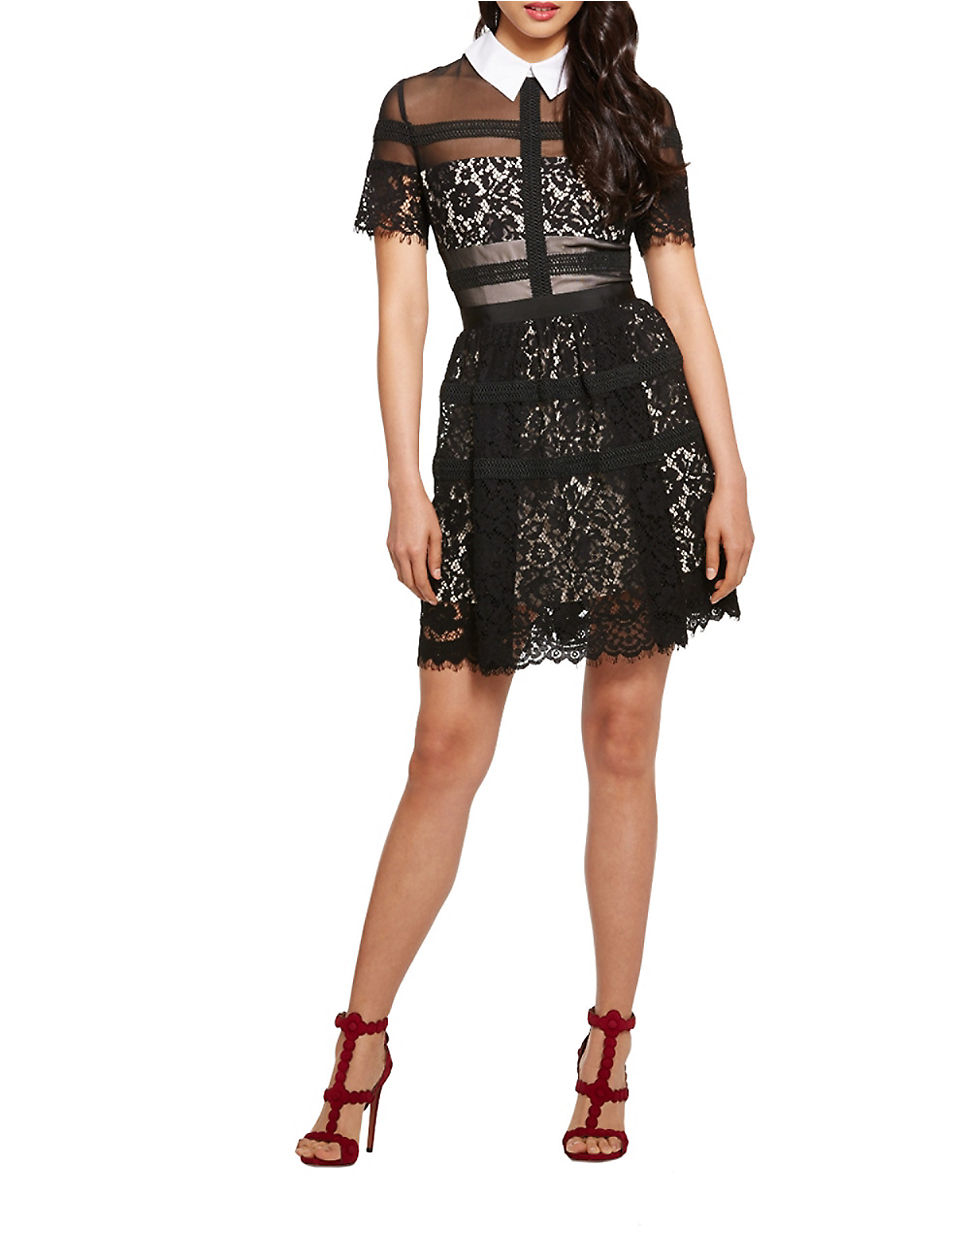 Donna morgan Collared A-line Lace Dress in Black - Lyst